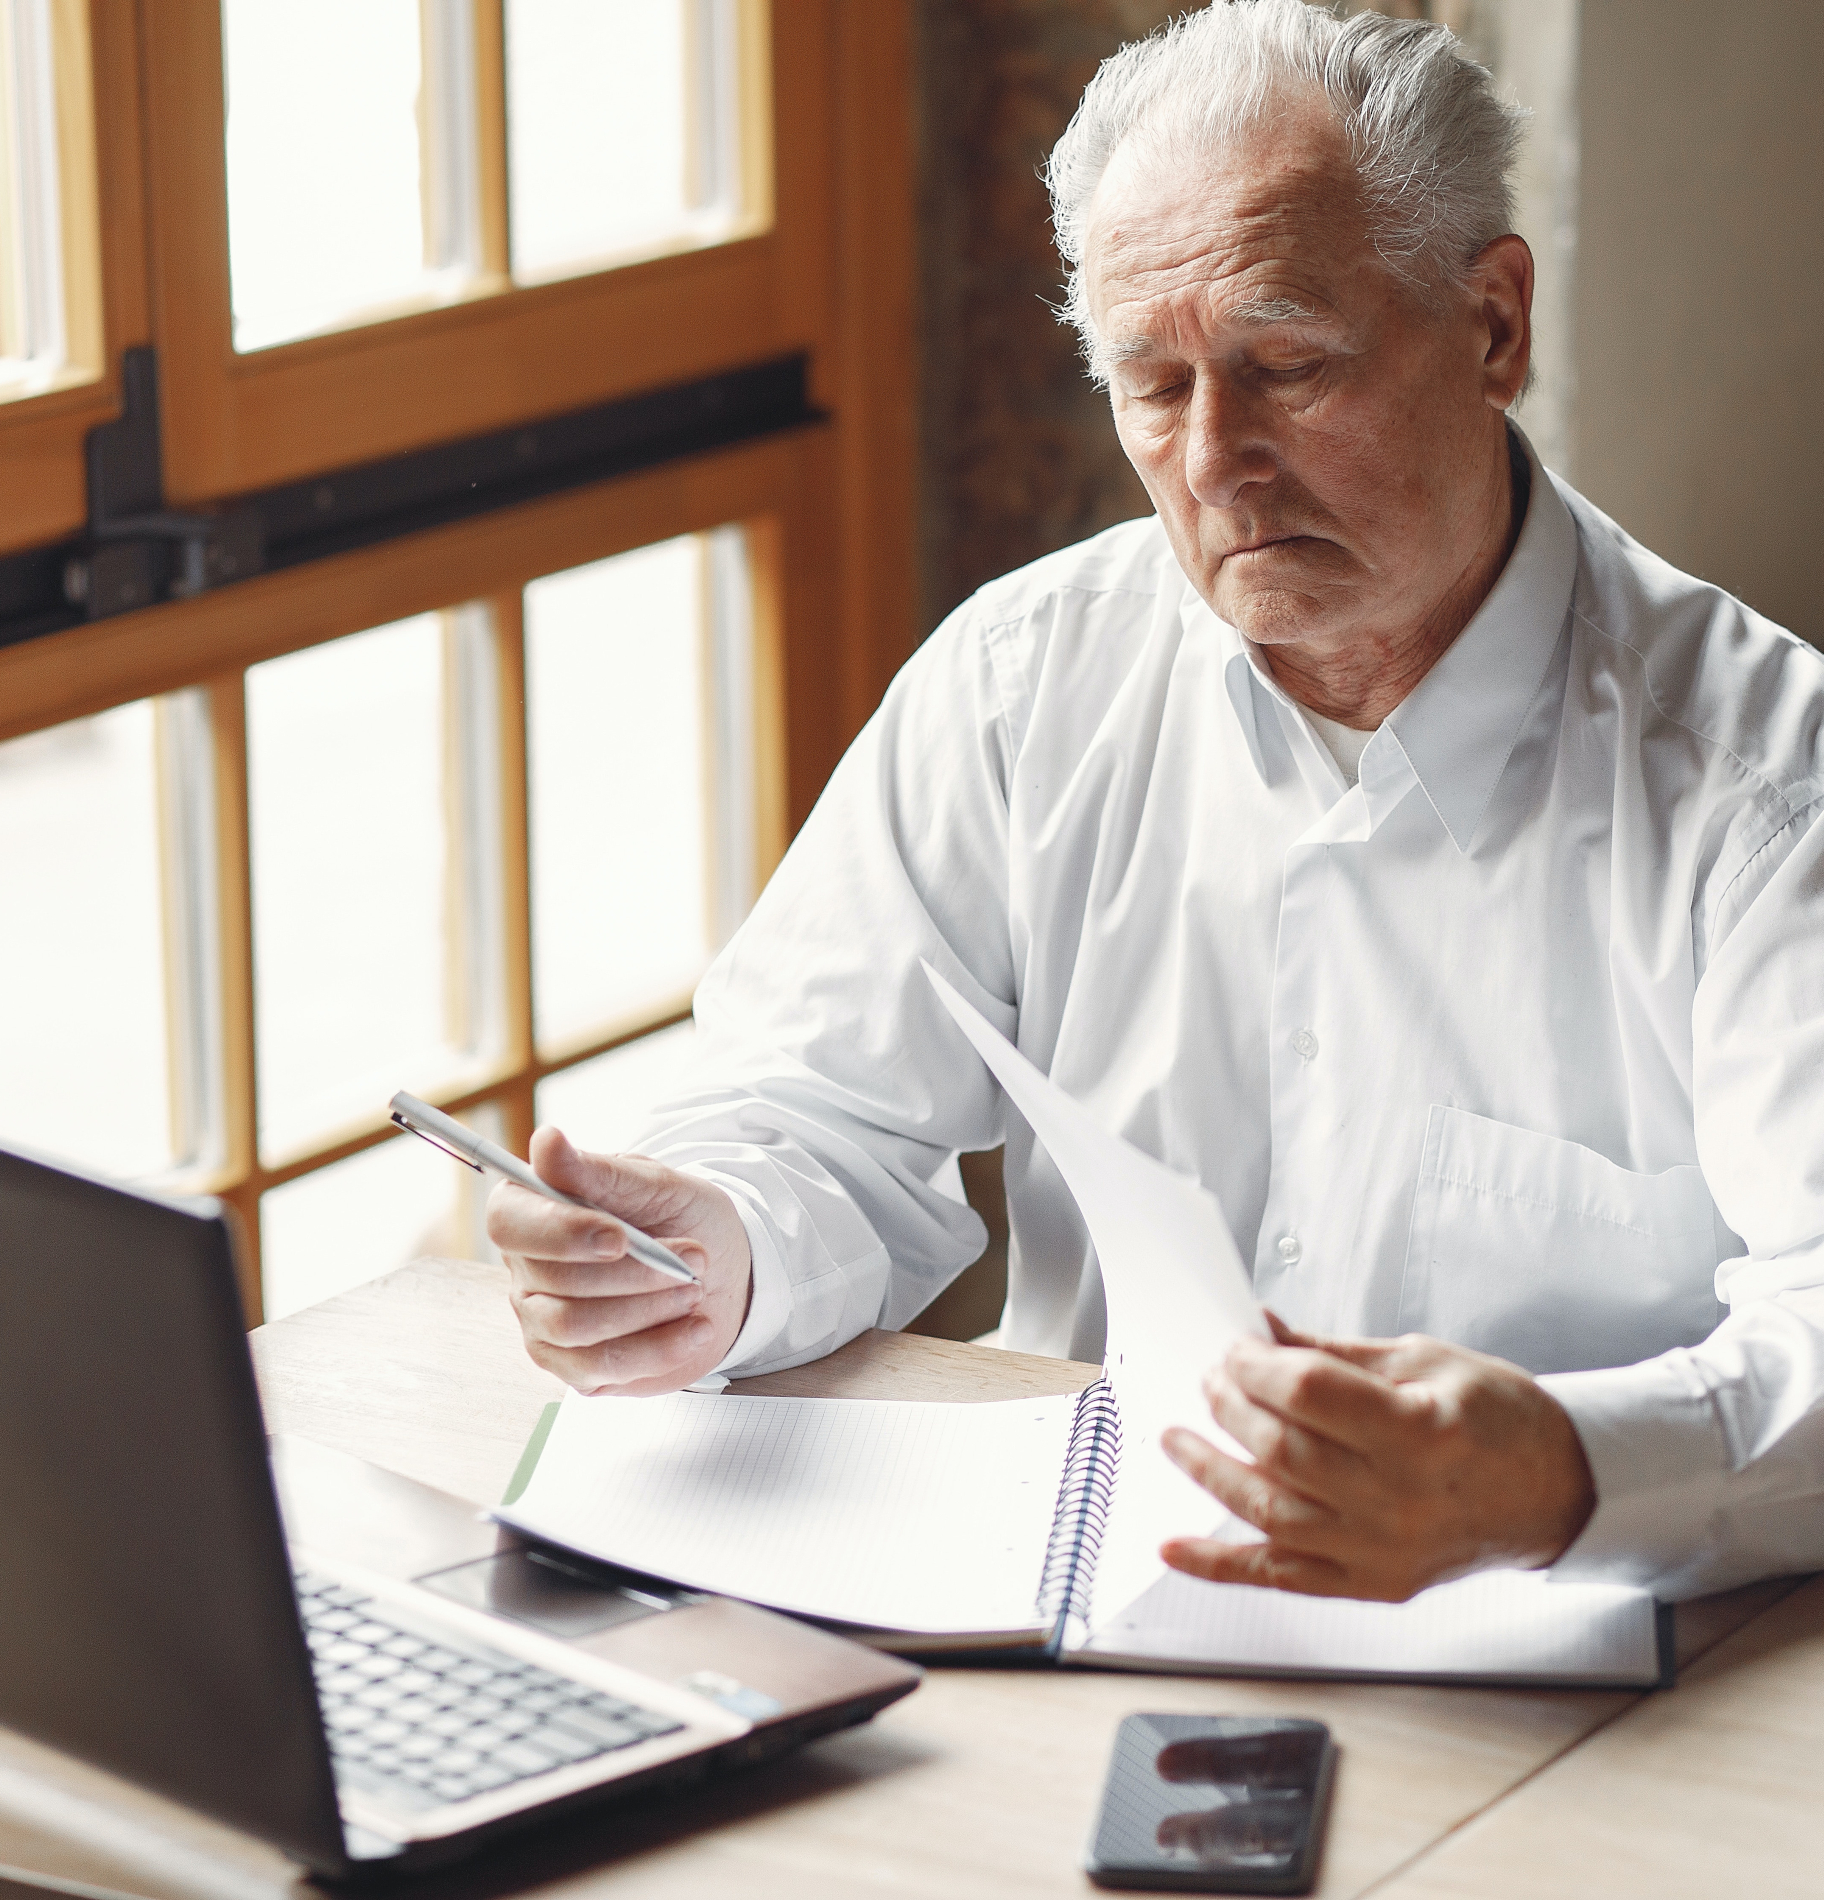 Elderly man works on a computer at home with a notebook